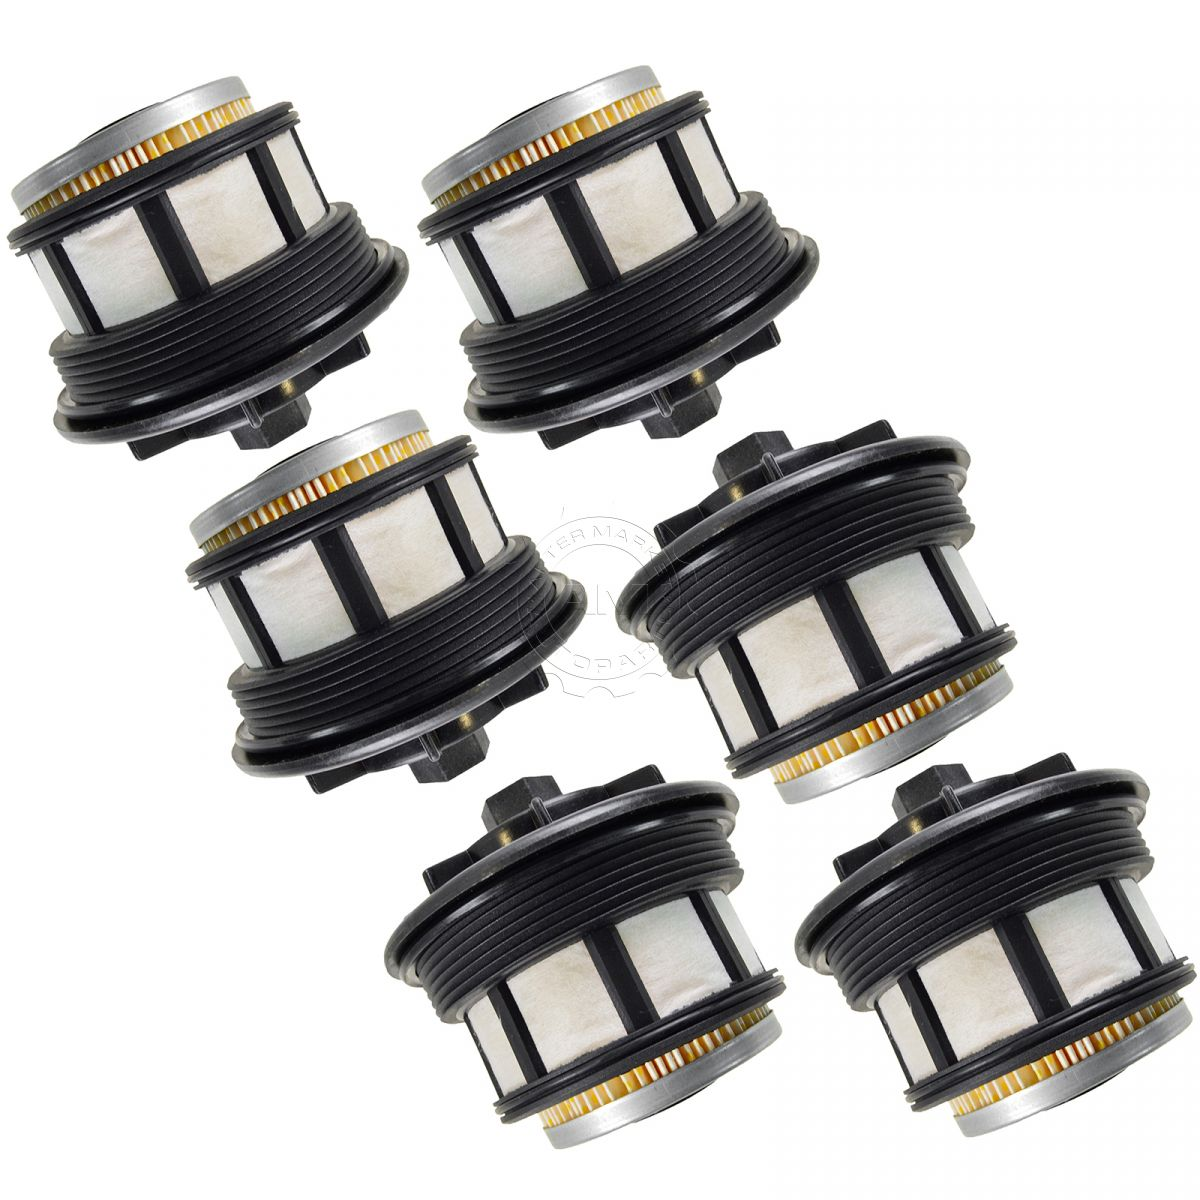 hight resolution of fuel filter set of 6 for ford f250